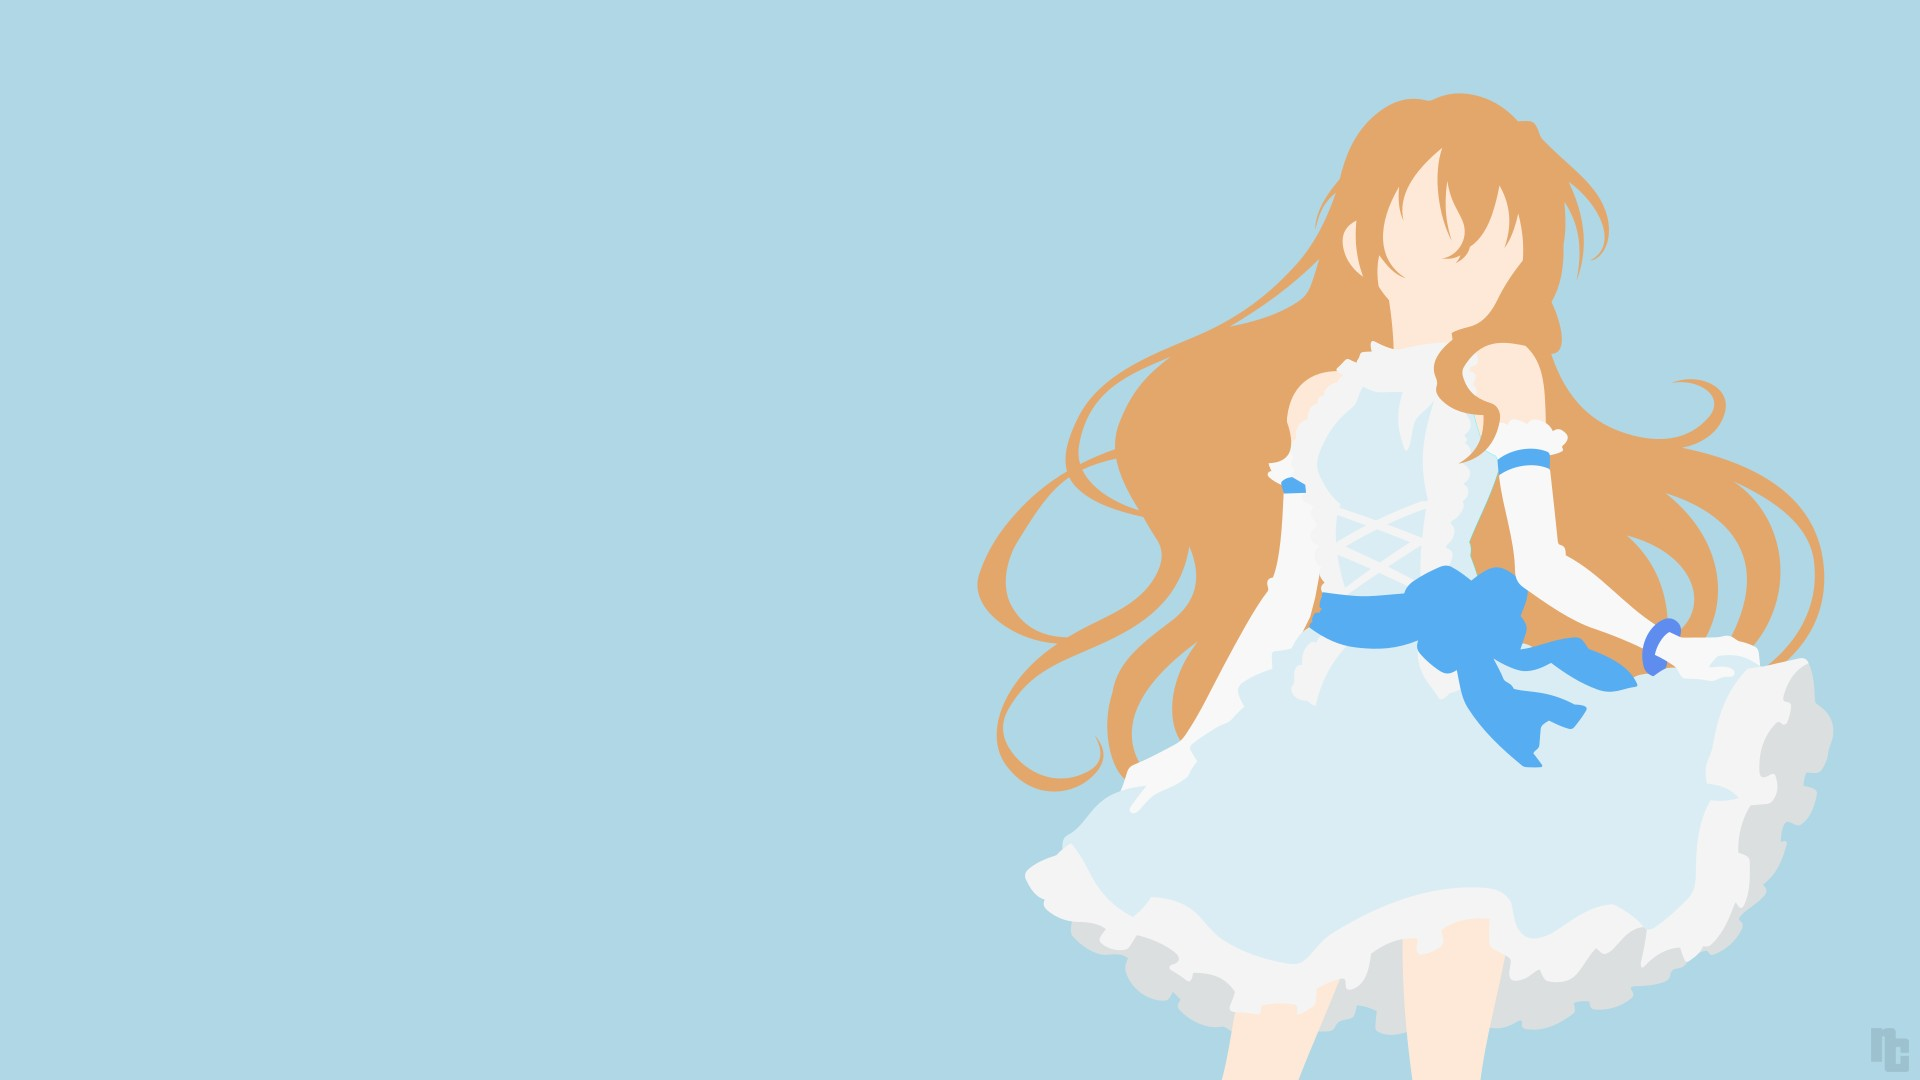 Anime Red Hair Girl Wallpaper Golden Time Kaga Kouko Anime Girls Hd Wallpapers